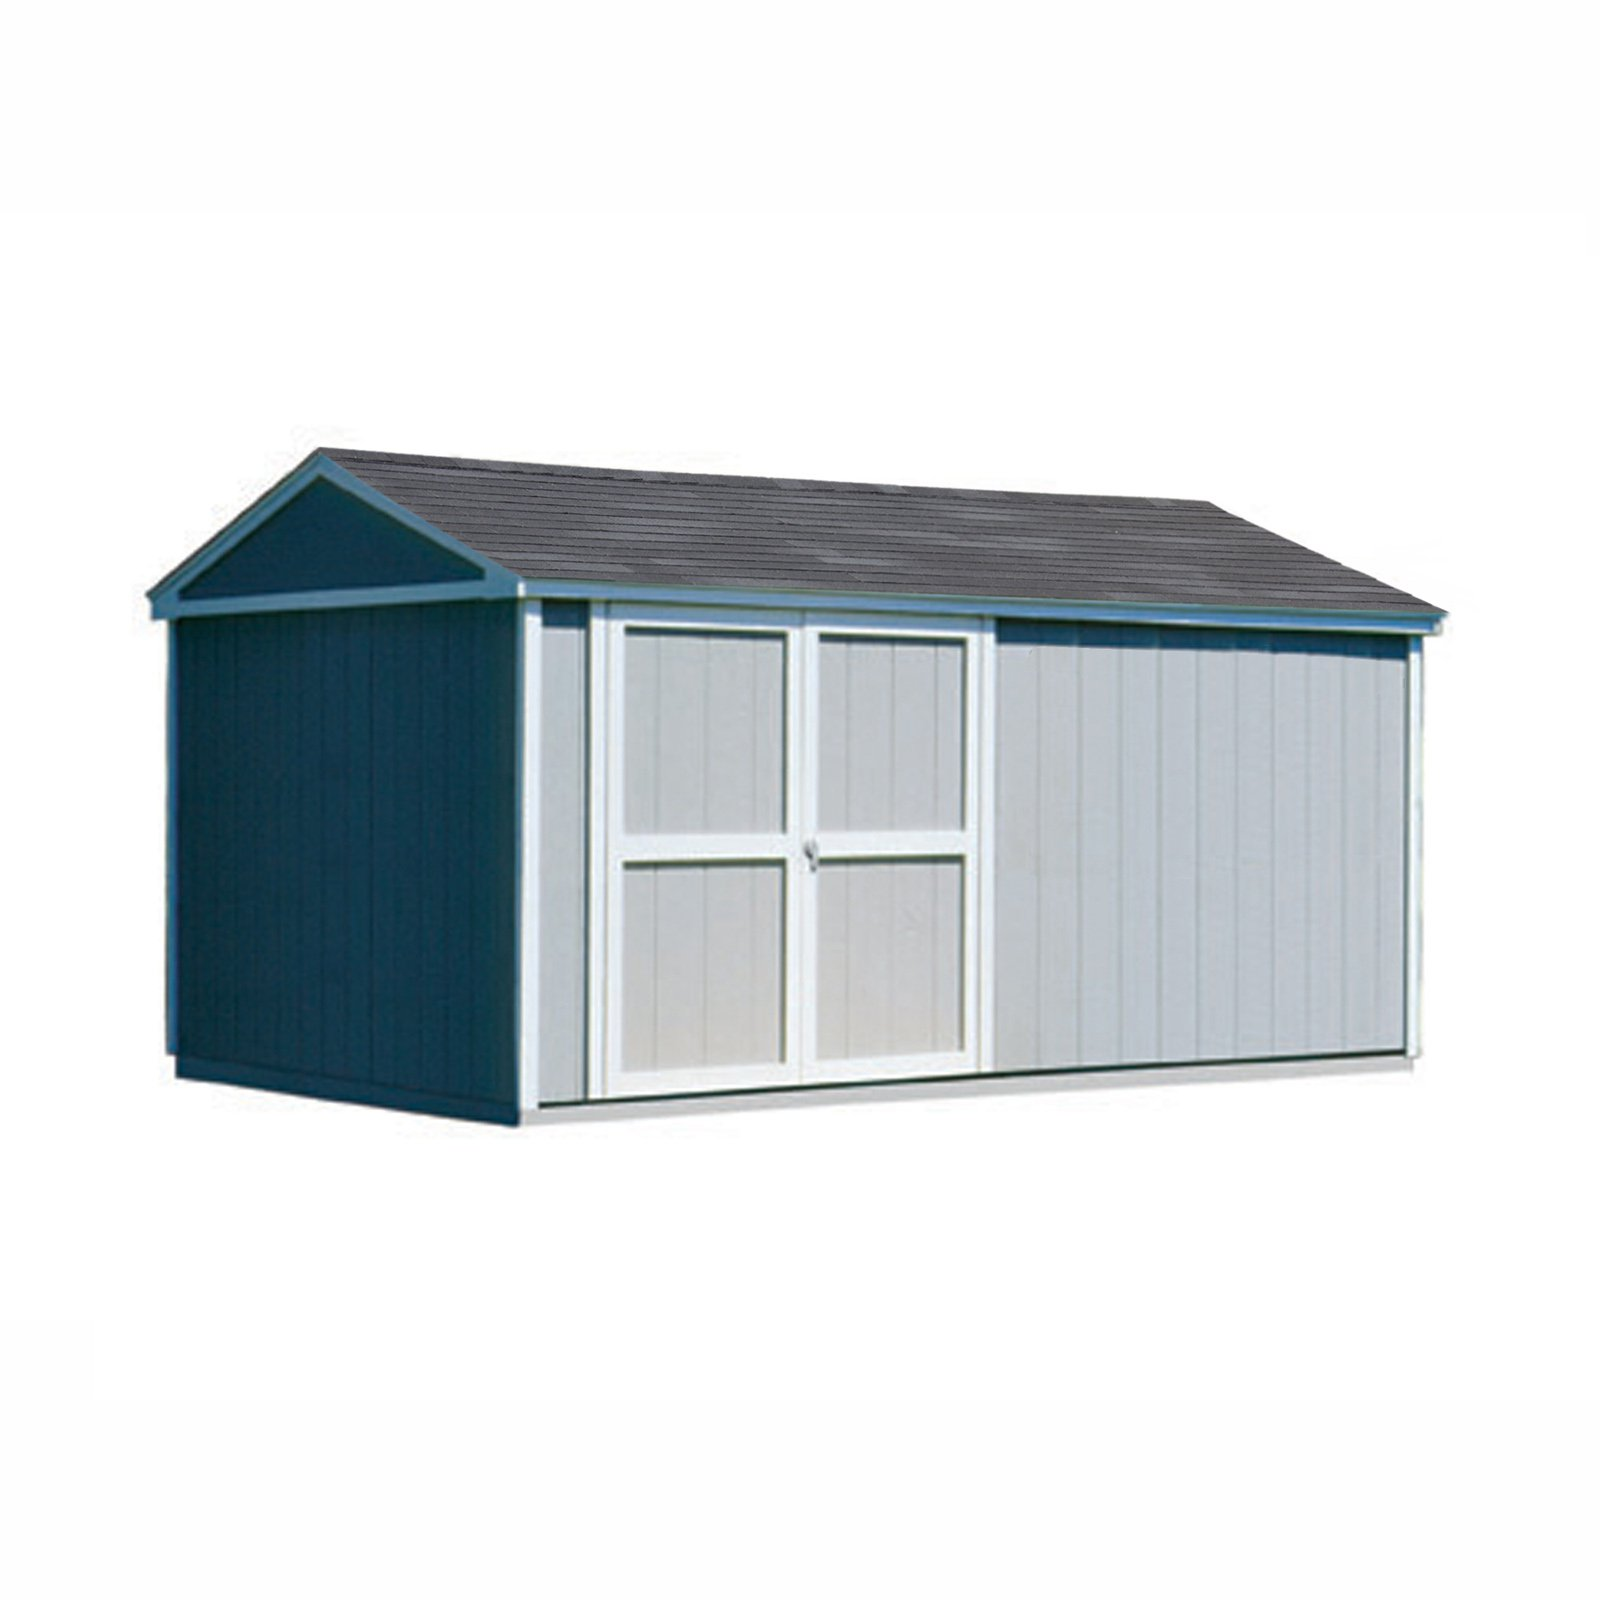 Handy Home Somerset Storage Shed - 10 x 16 ft.